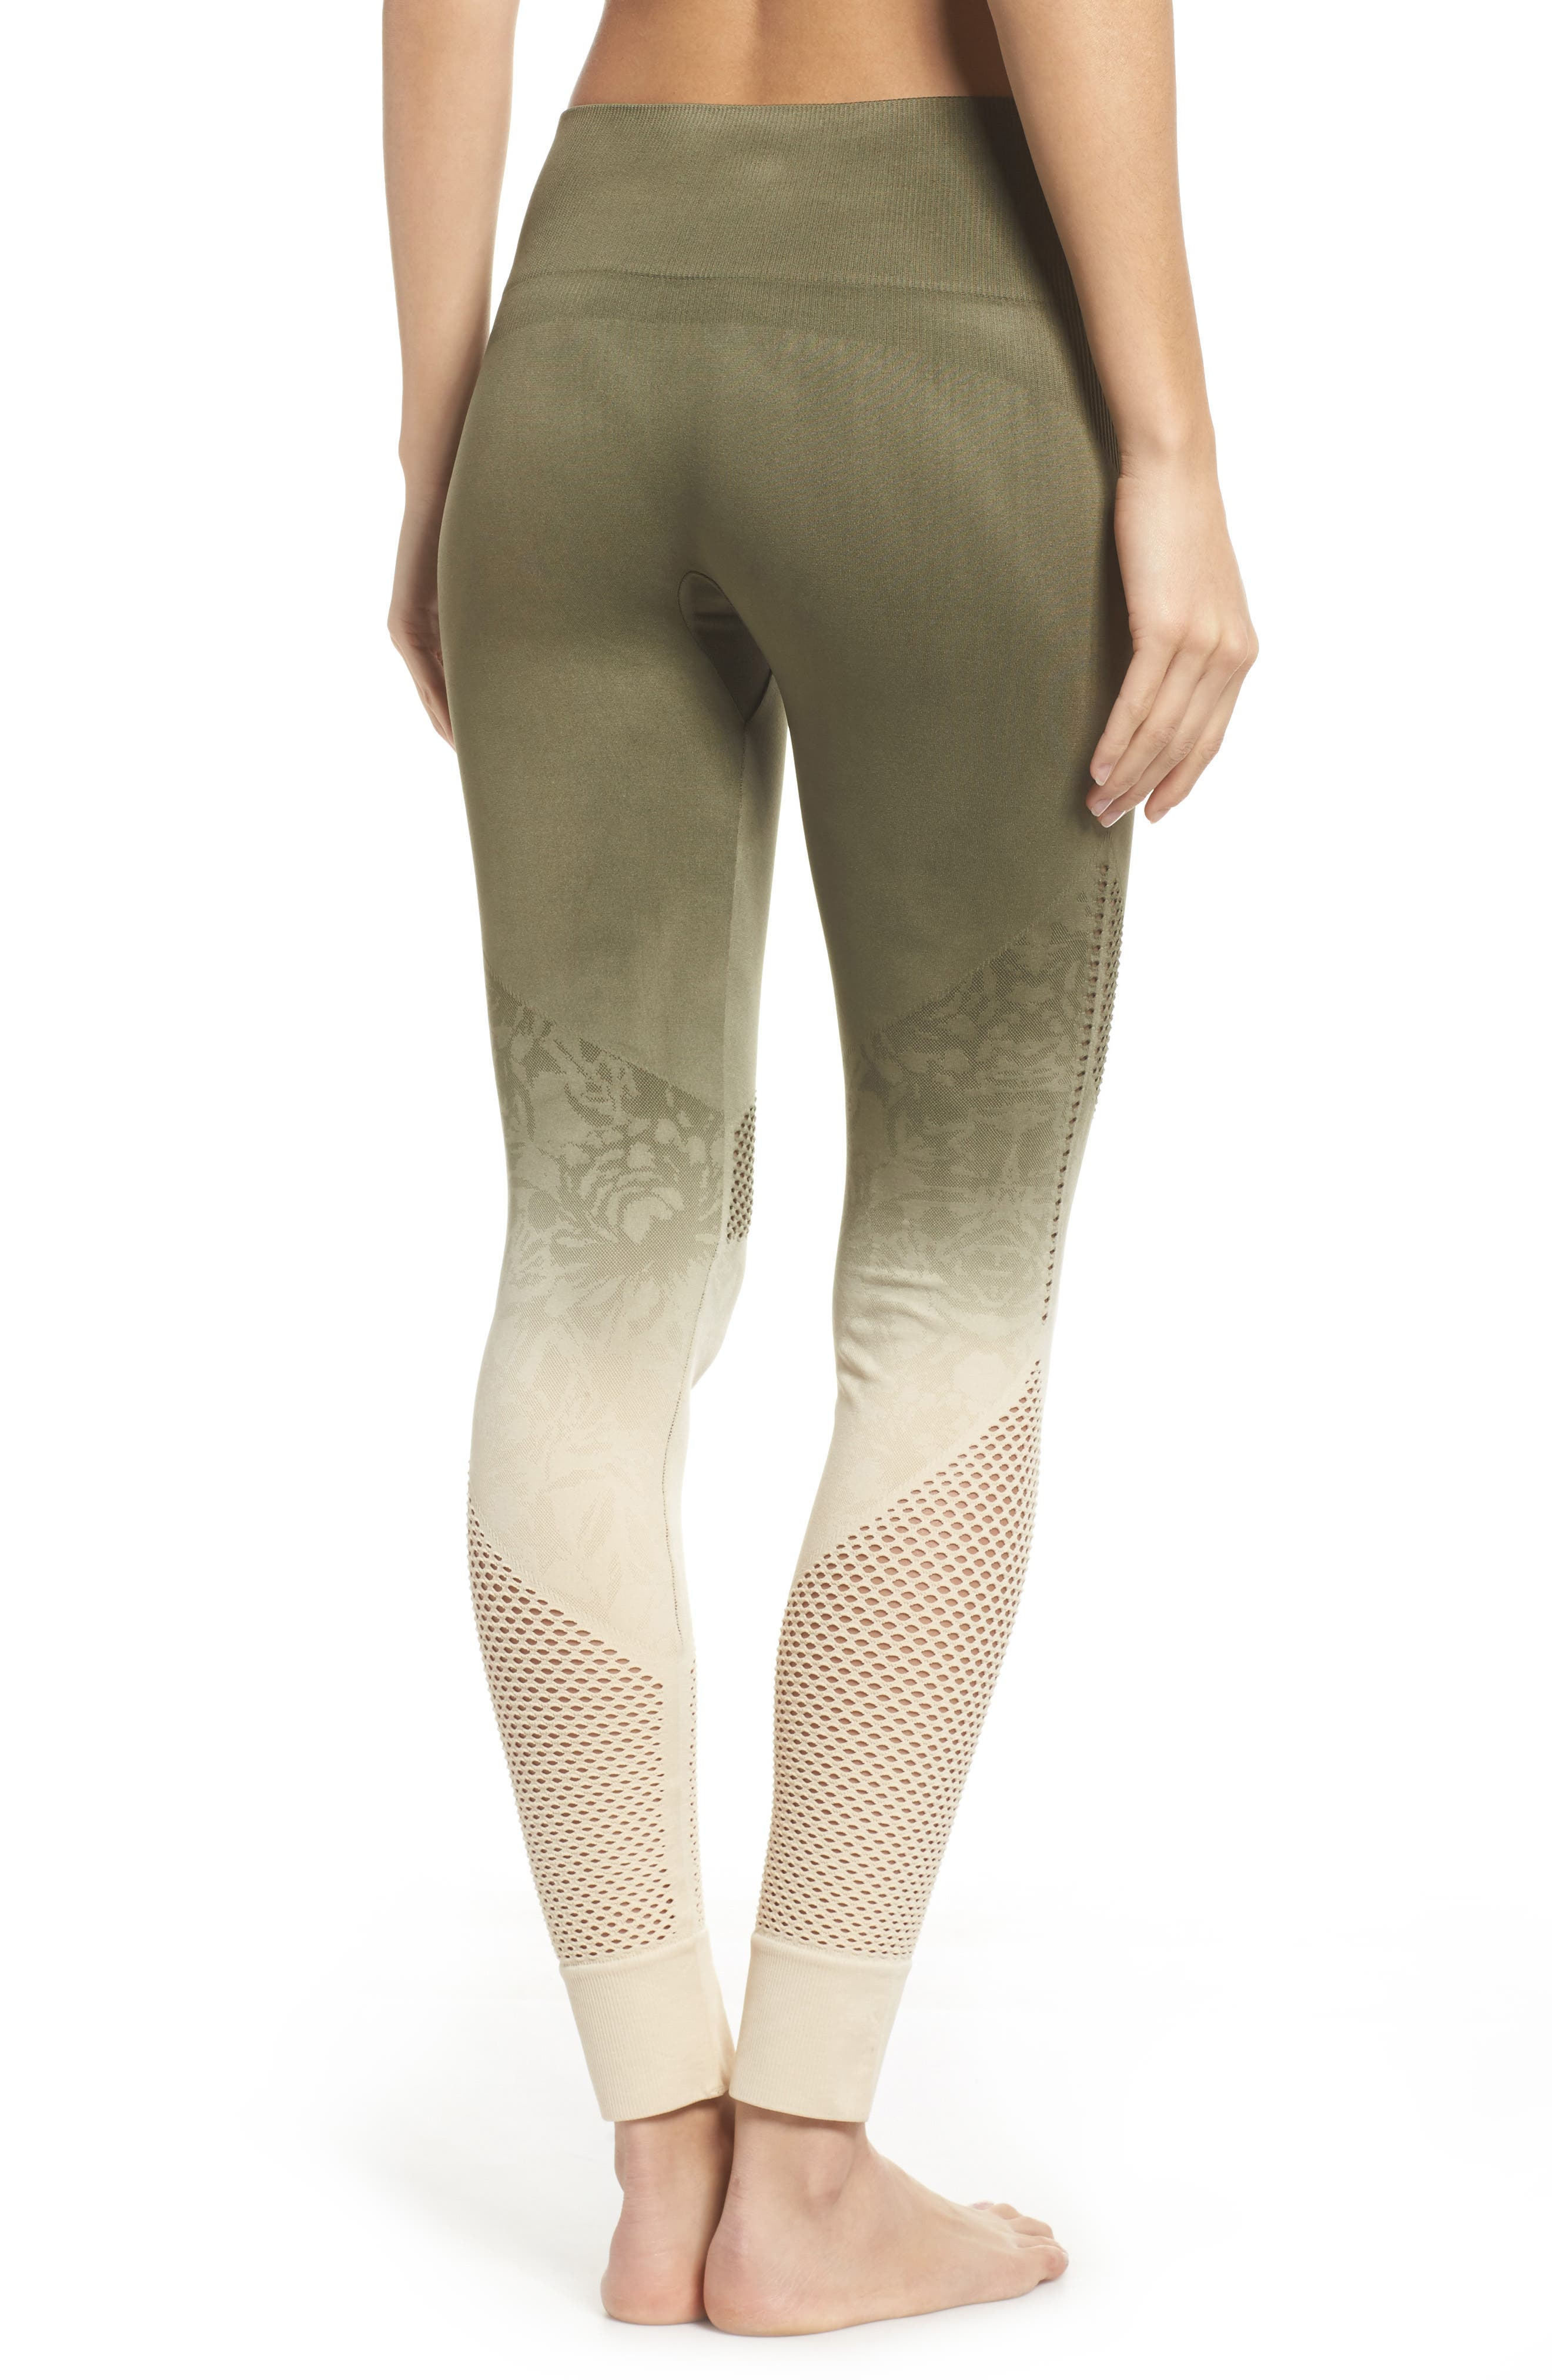 Formation High Waist Leggings,                             Alternate thumbnail 2, color,                             250